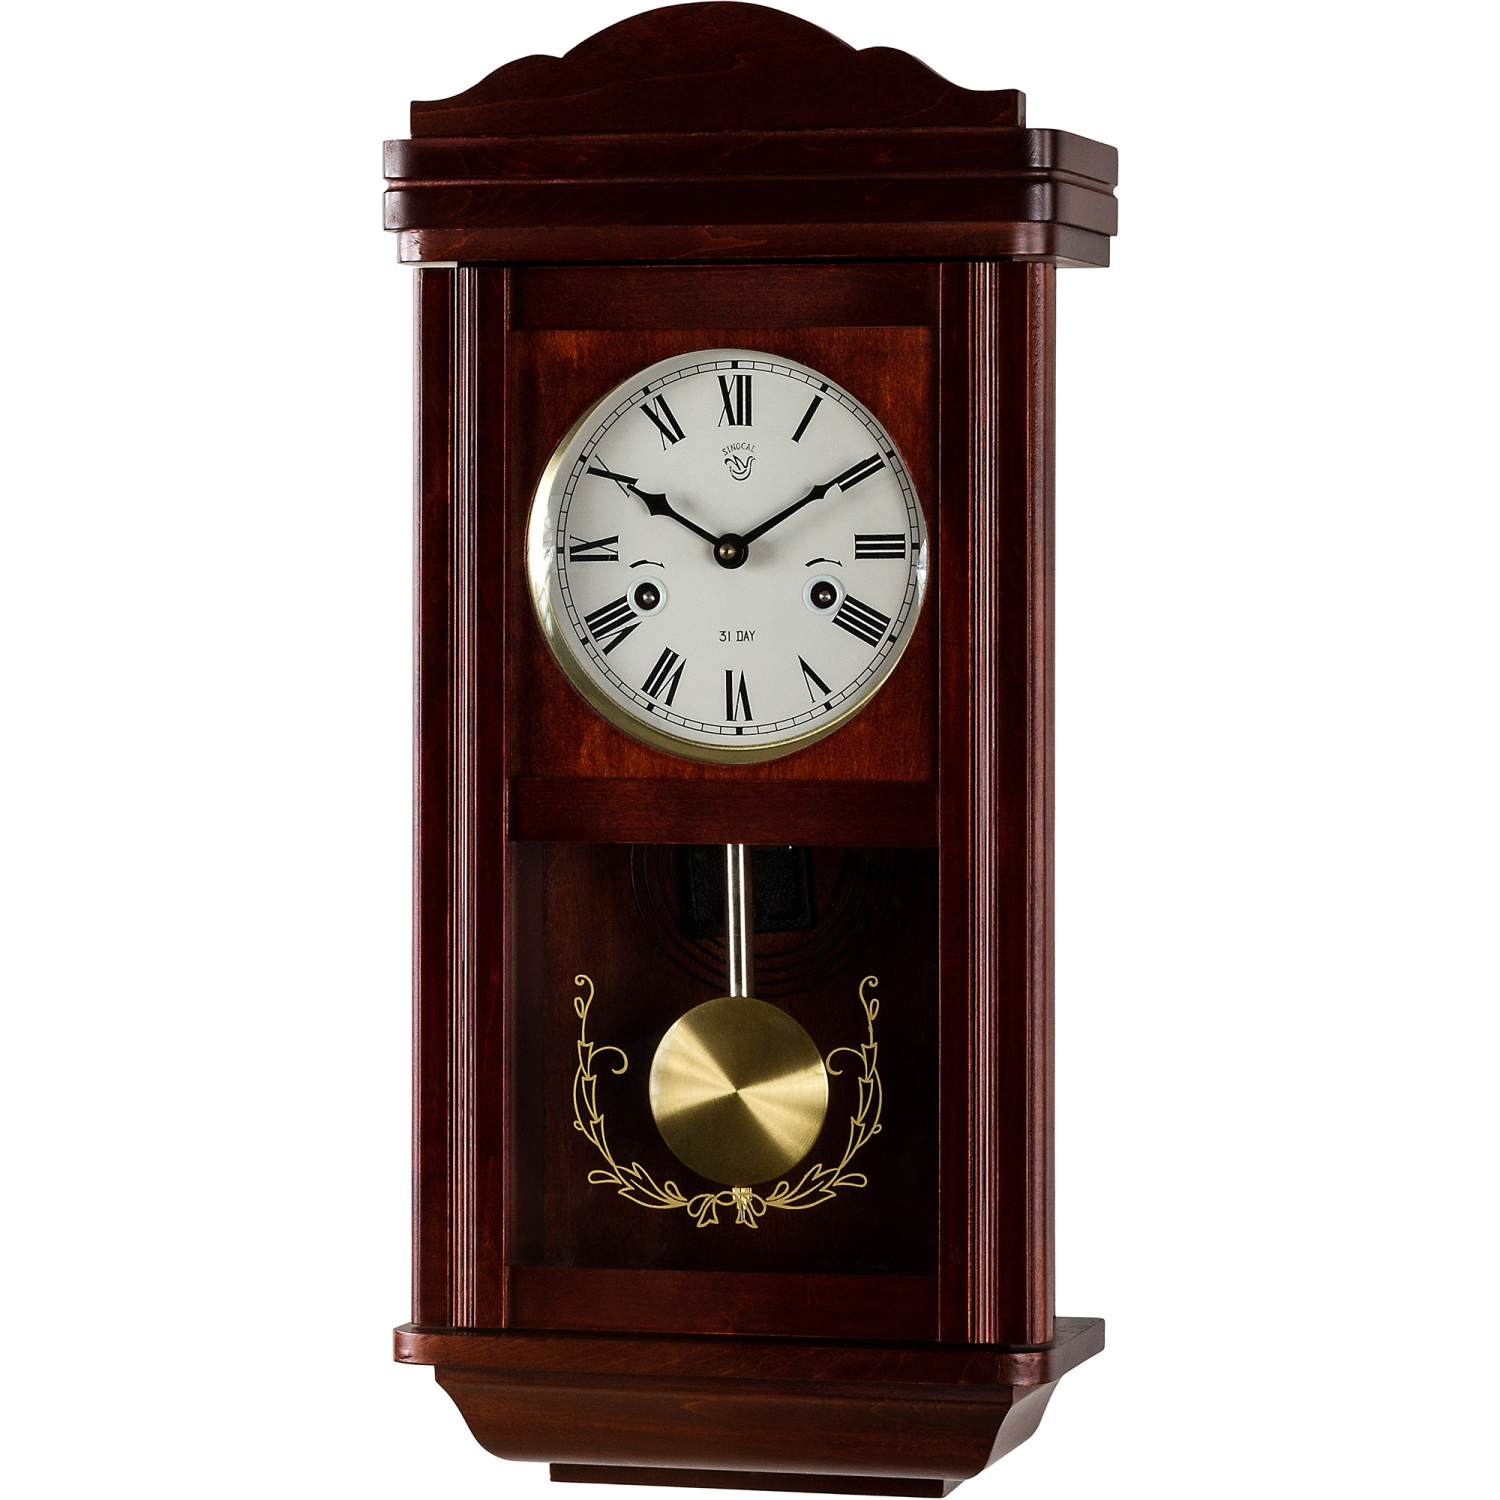 wanduhr pendeluhr uhr regulator im mahagoni stil pendel ebay. Black Bedroom Furniture Sets. Home Design Ideas